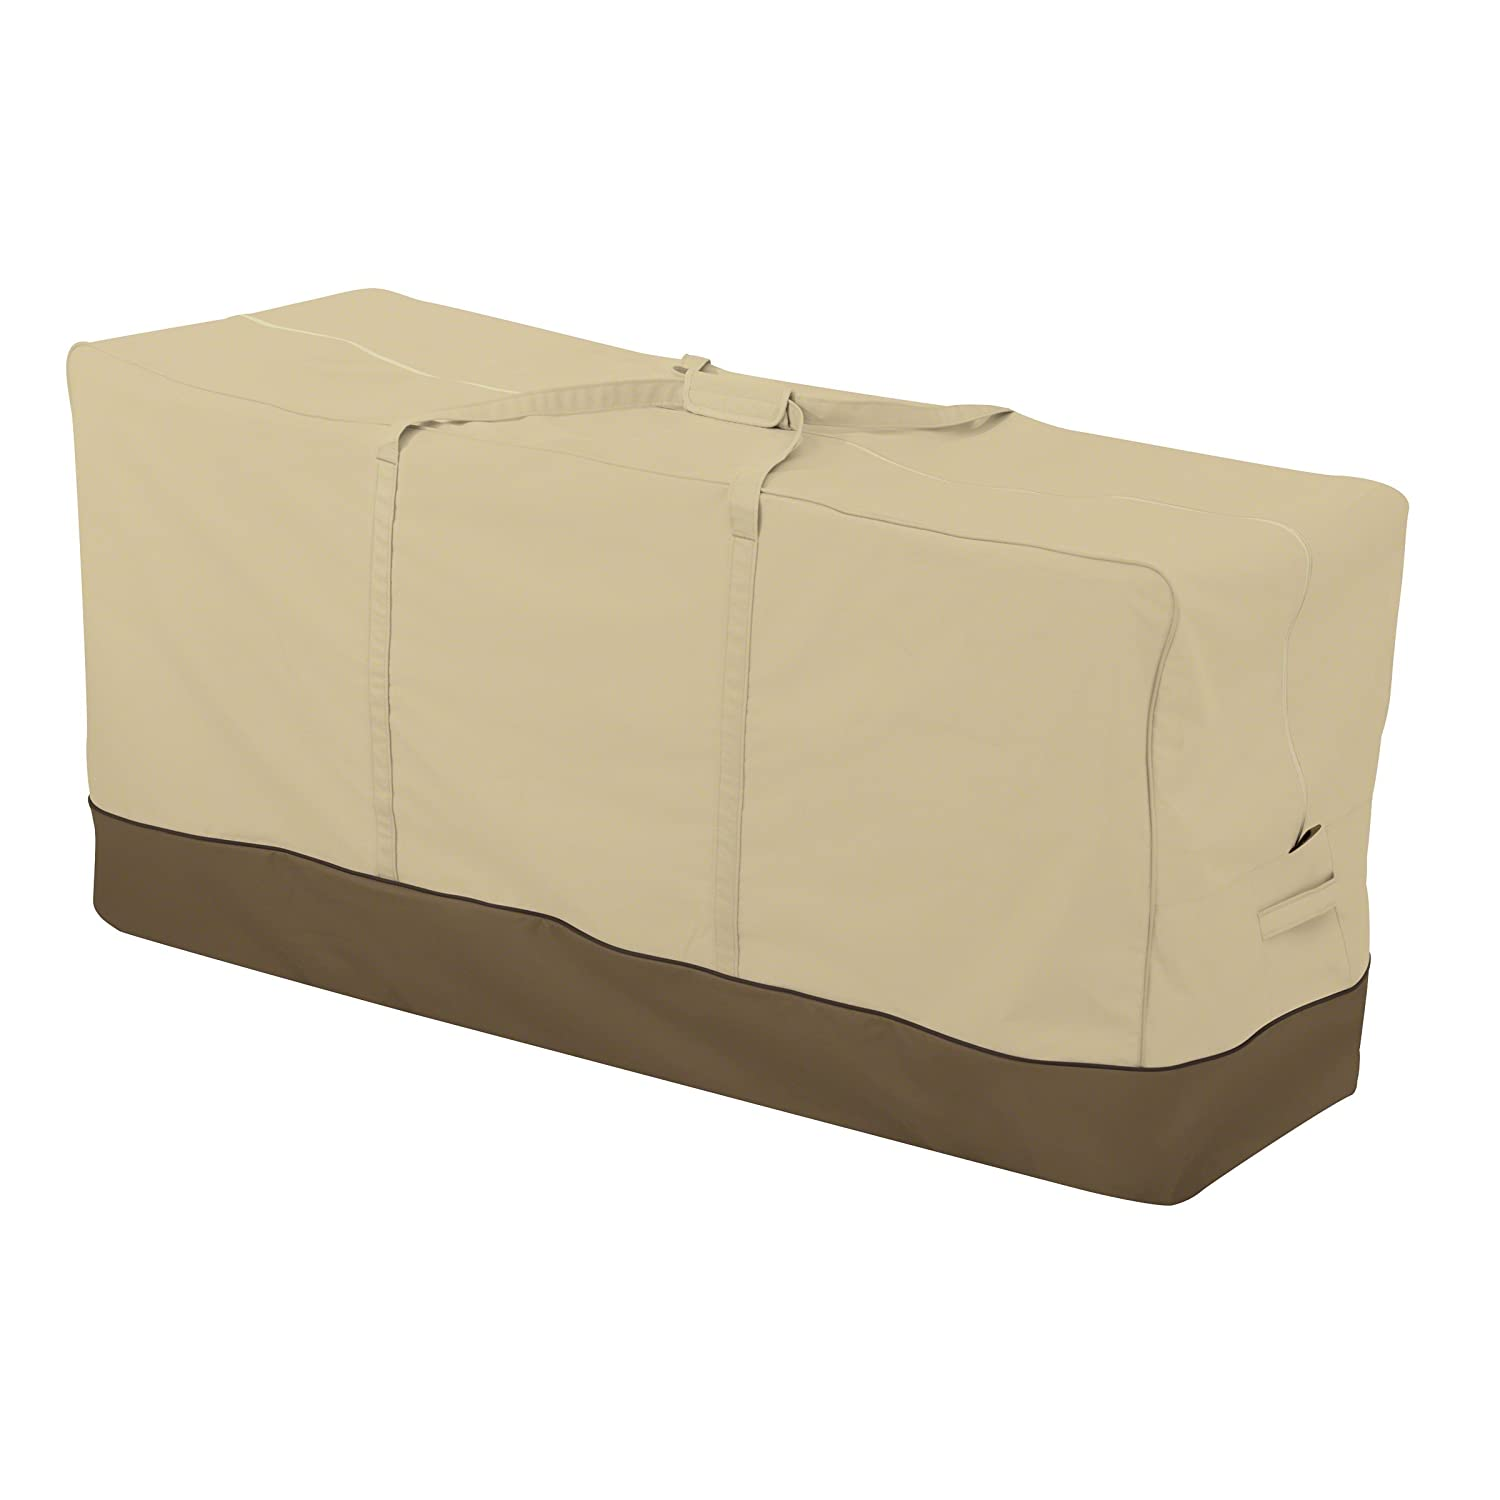 Classic Accessories Veranda Patio Cushion & Cover Storage Bag, Oversized